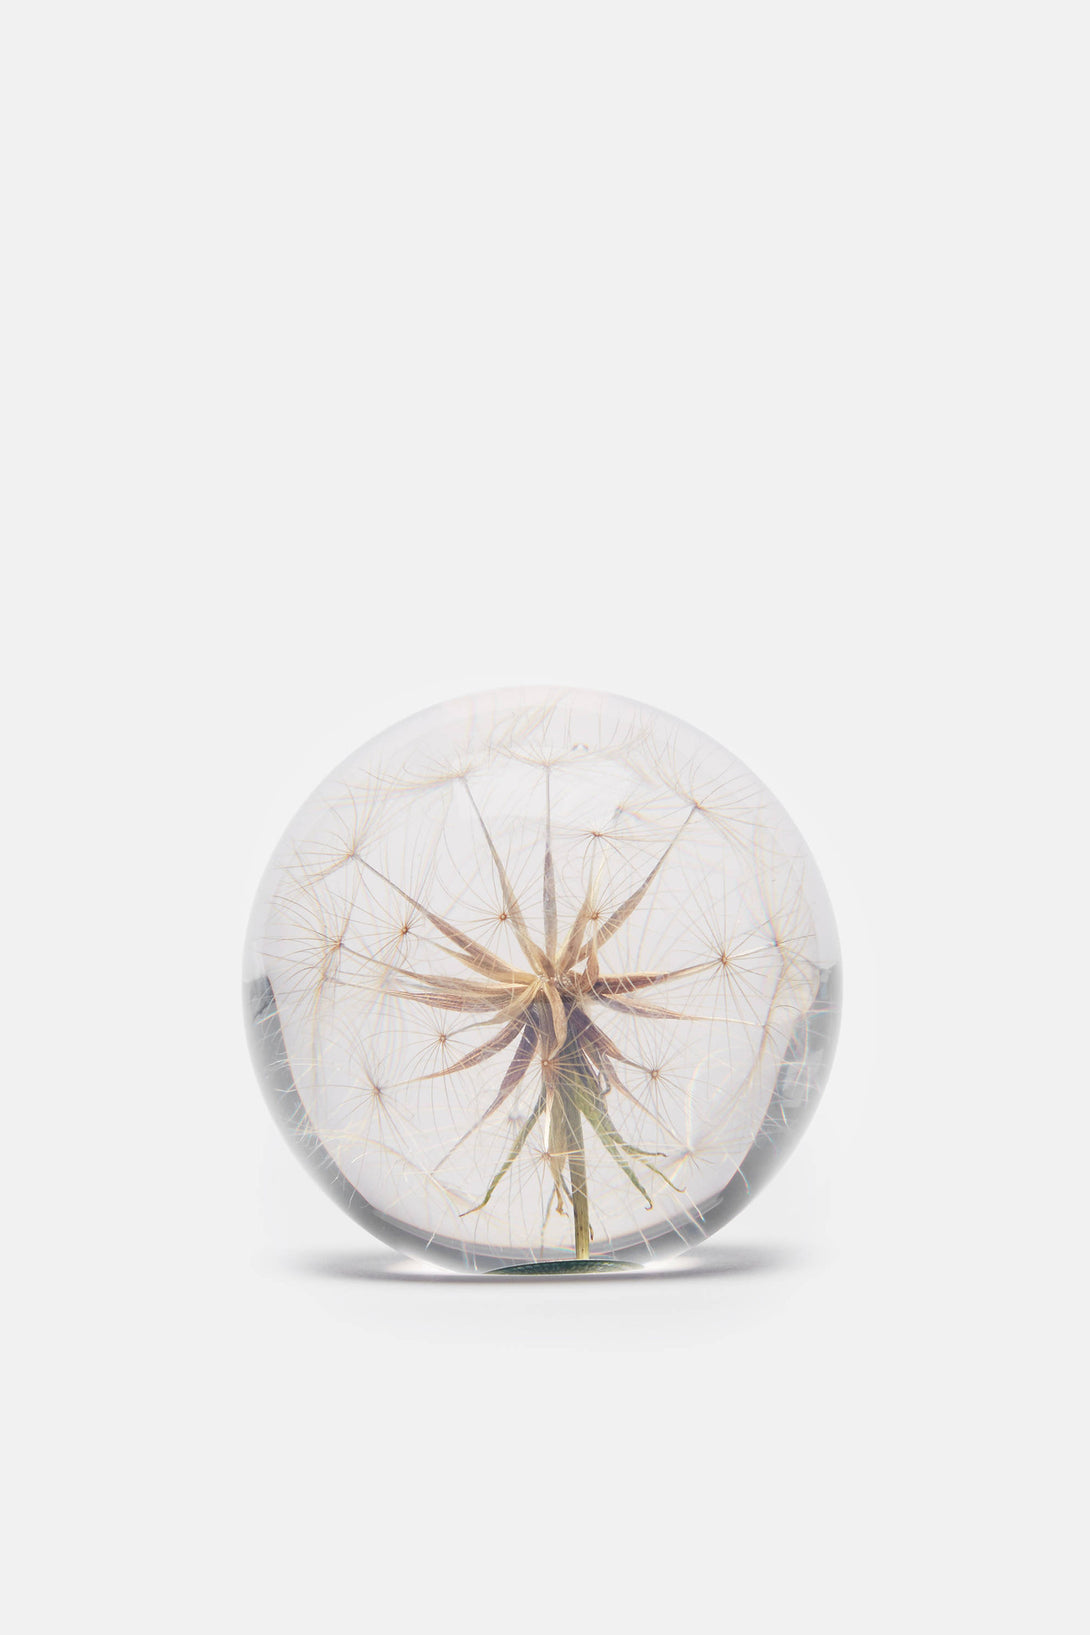 Paperweight - Goat's Beard - Large